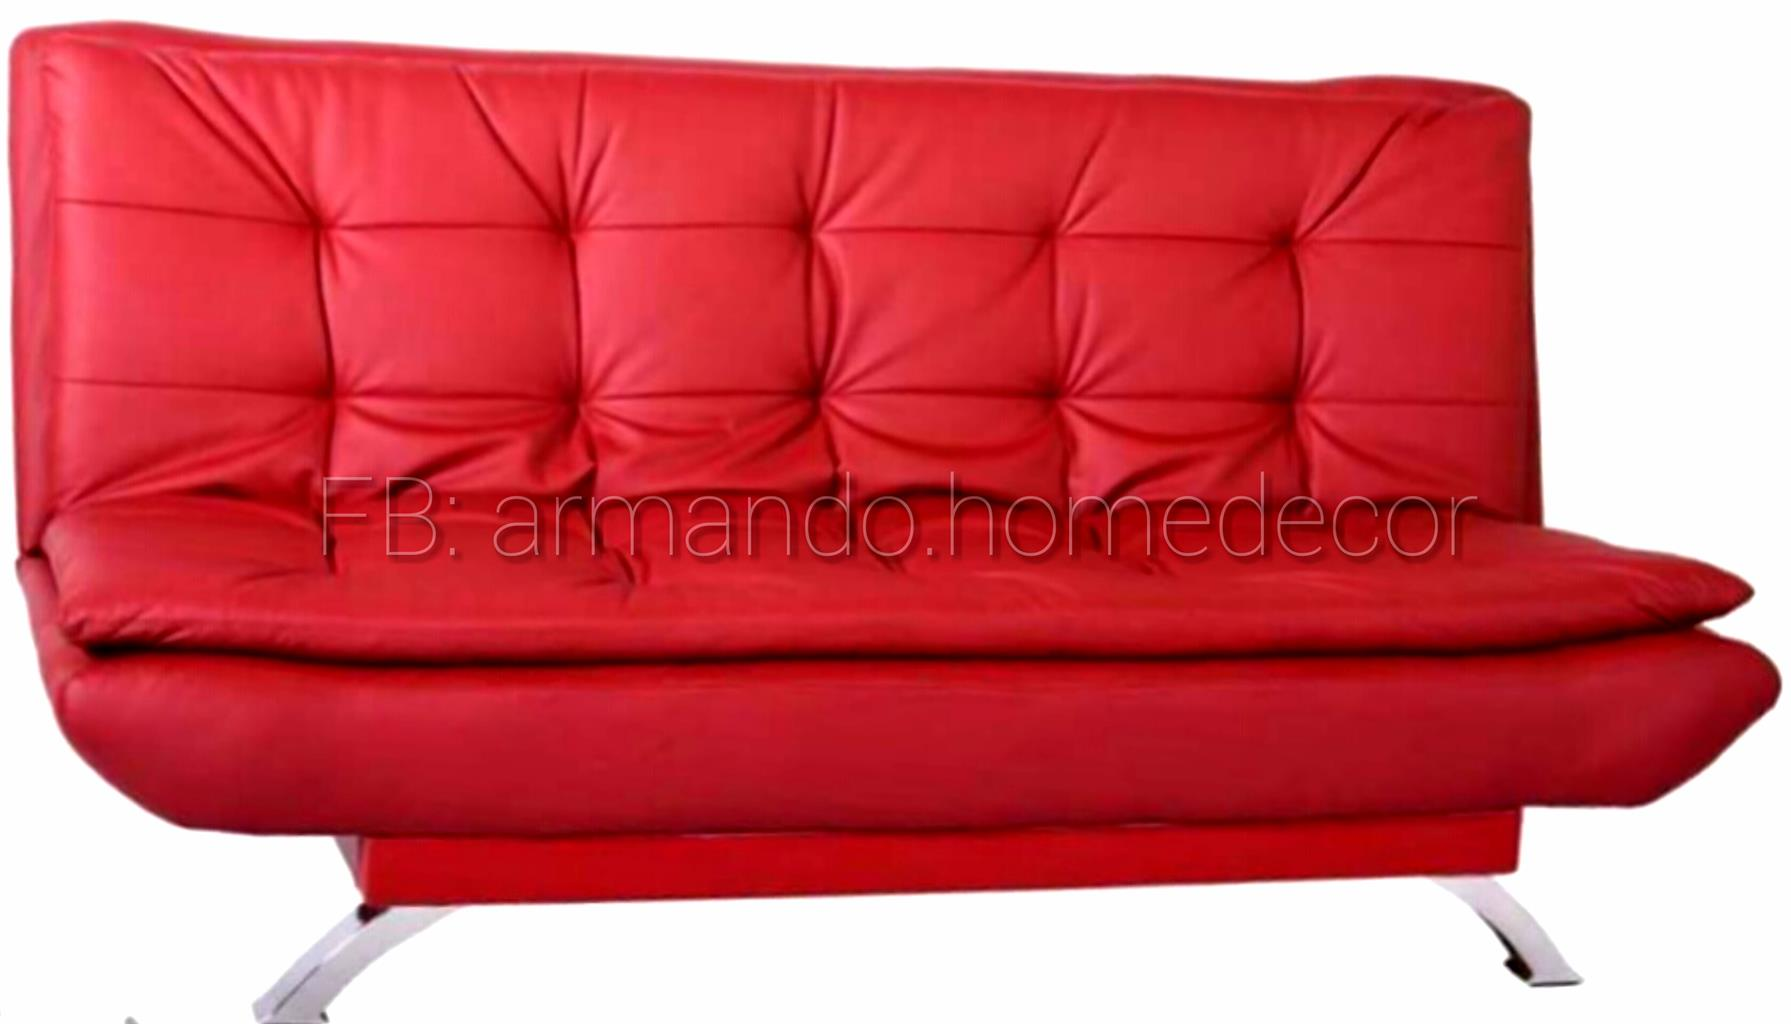 l fk pleather home co couch design sofa genty thesofas